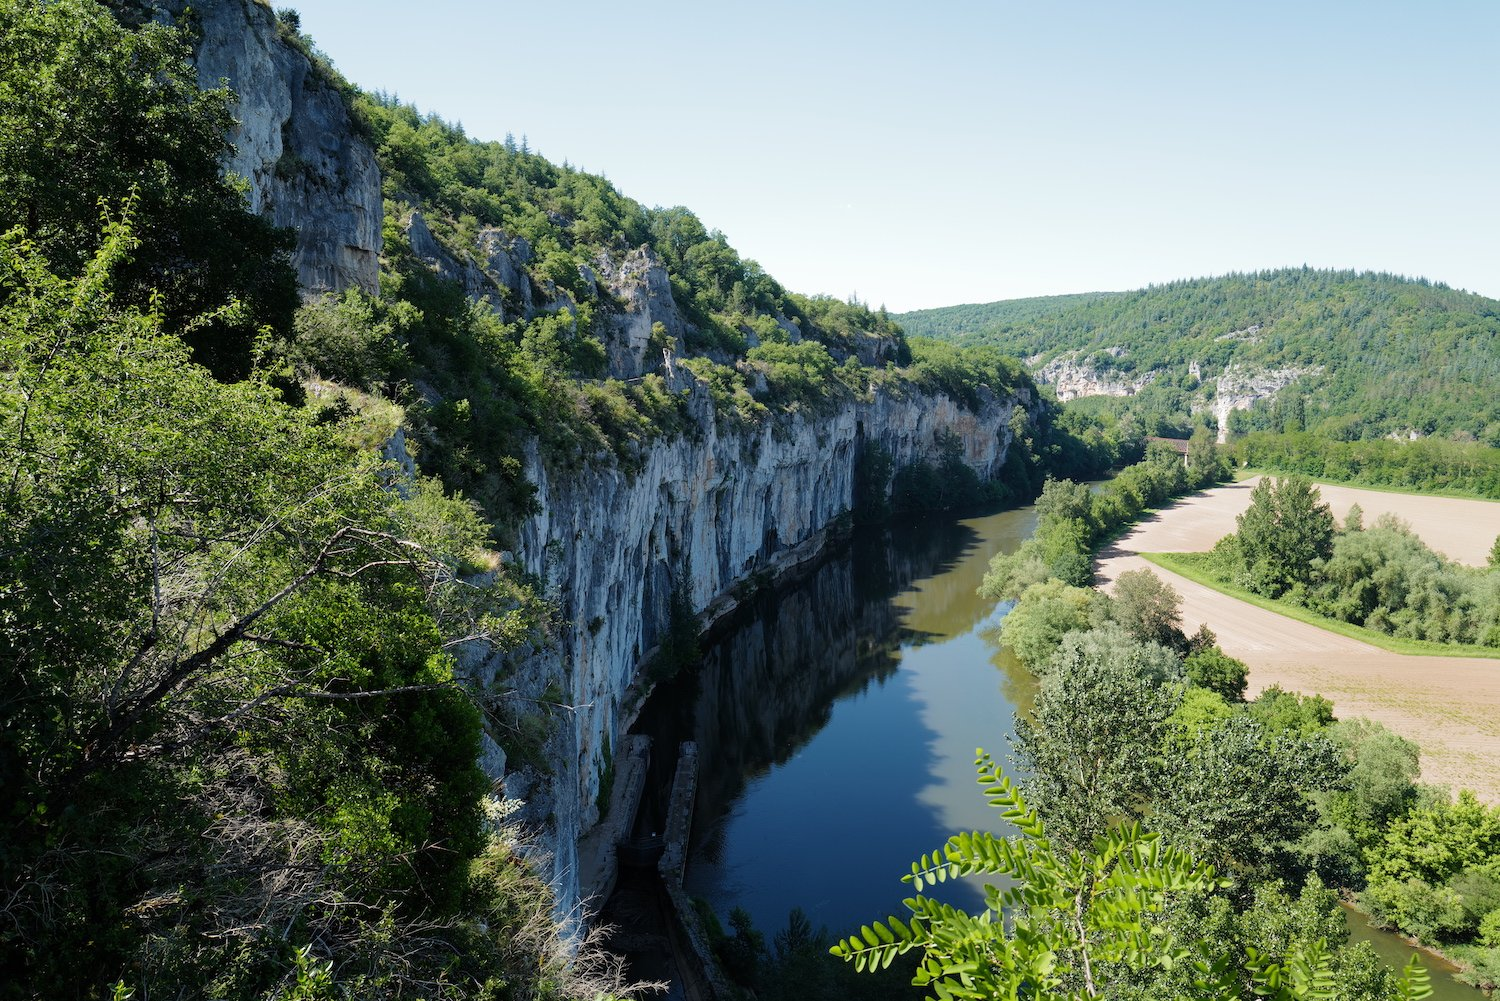 St Cirq Lapopie Lot gorge view